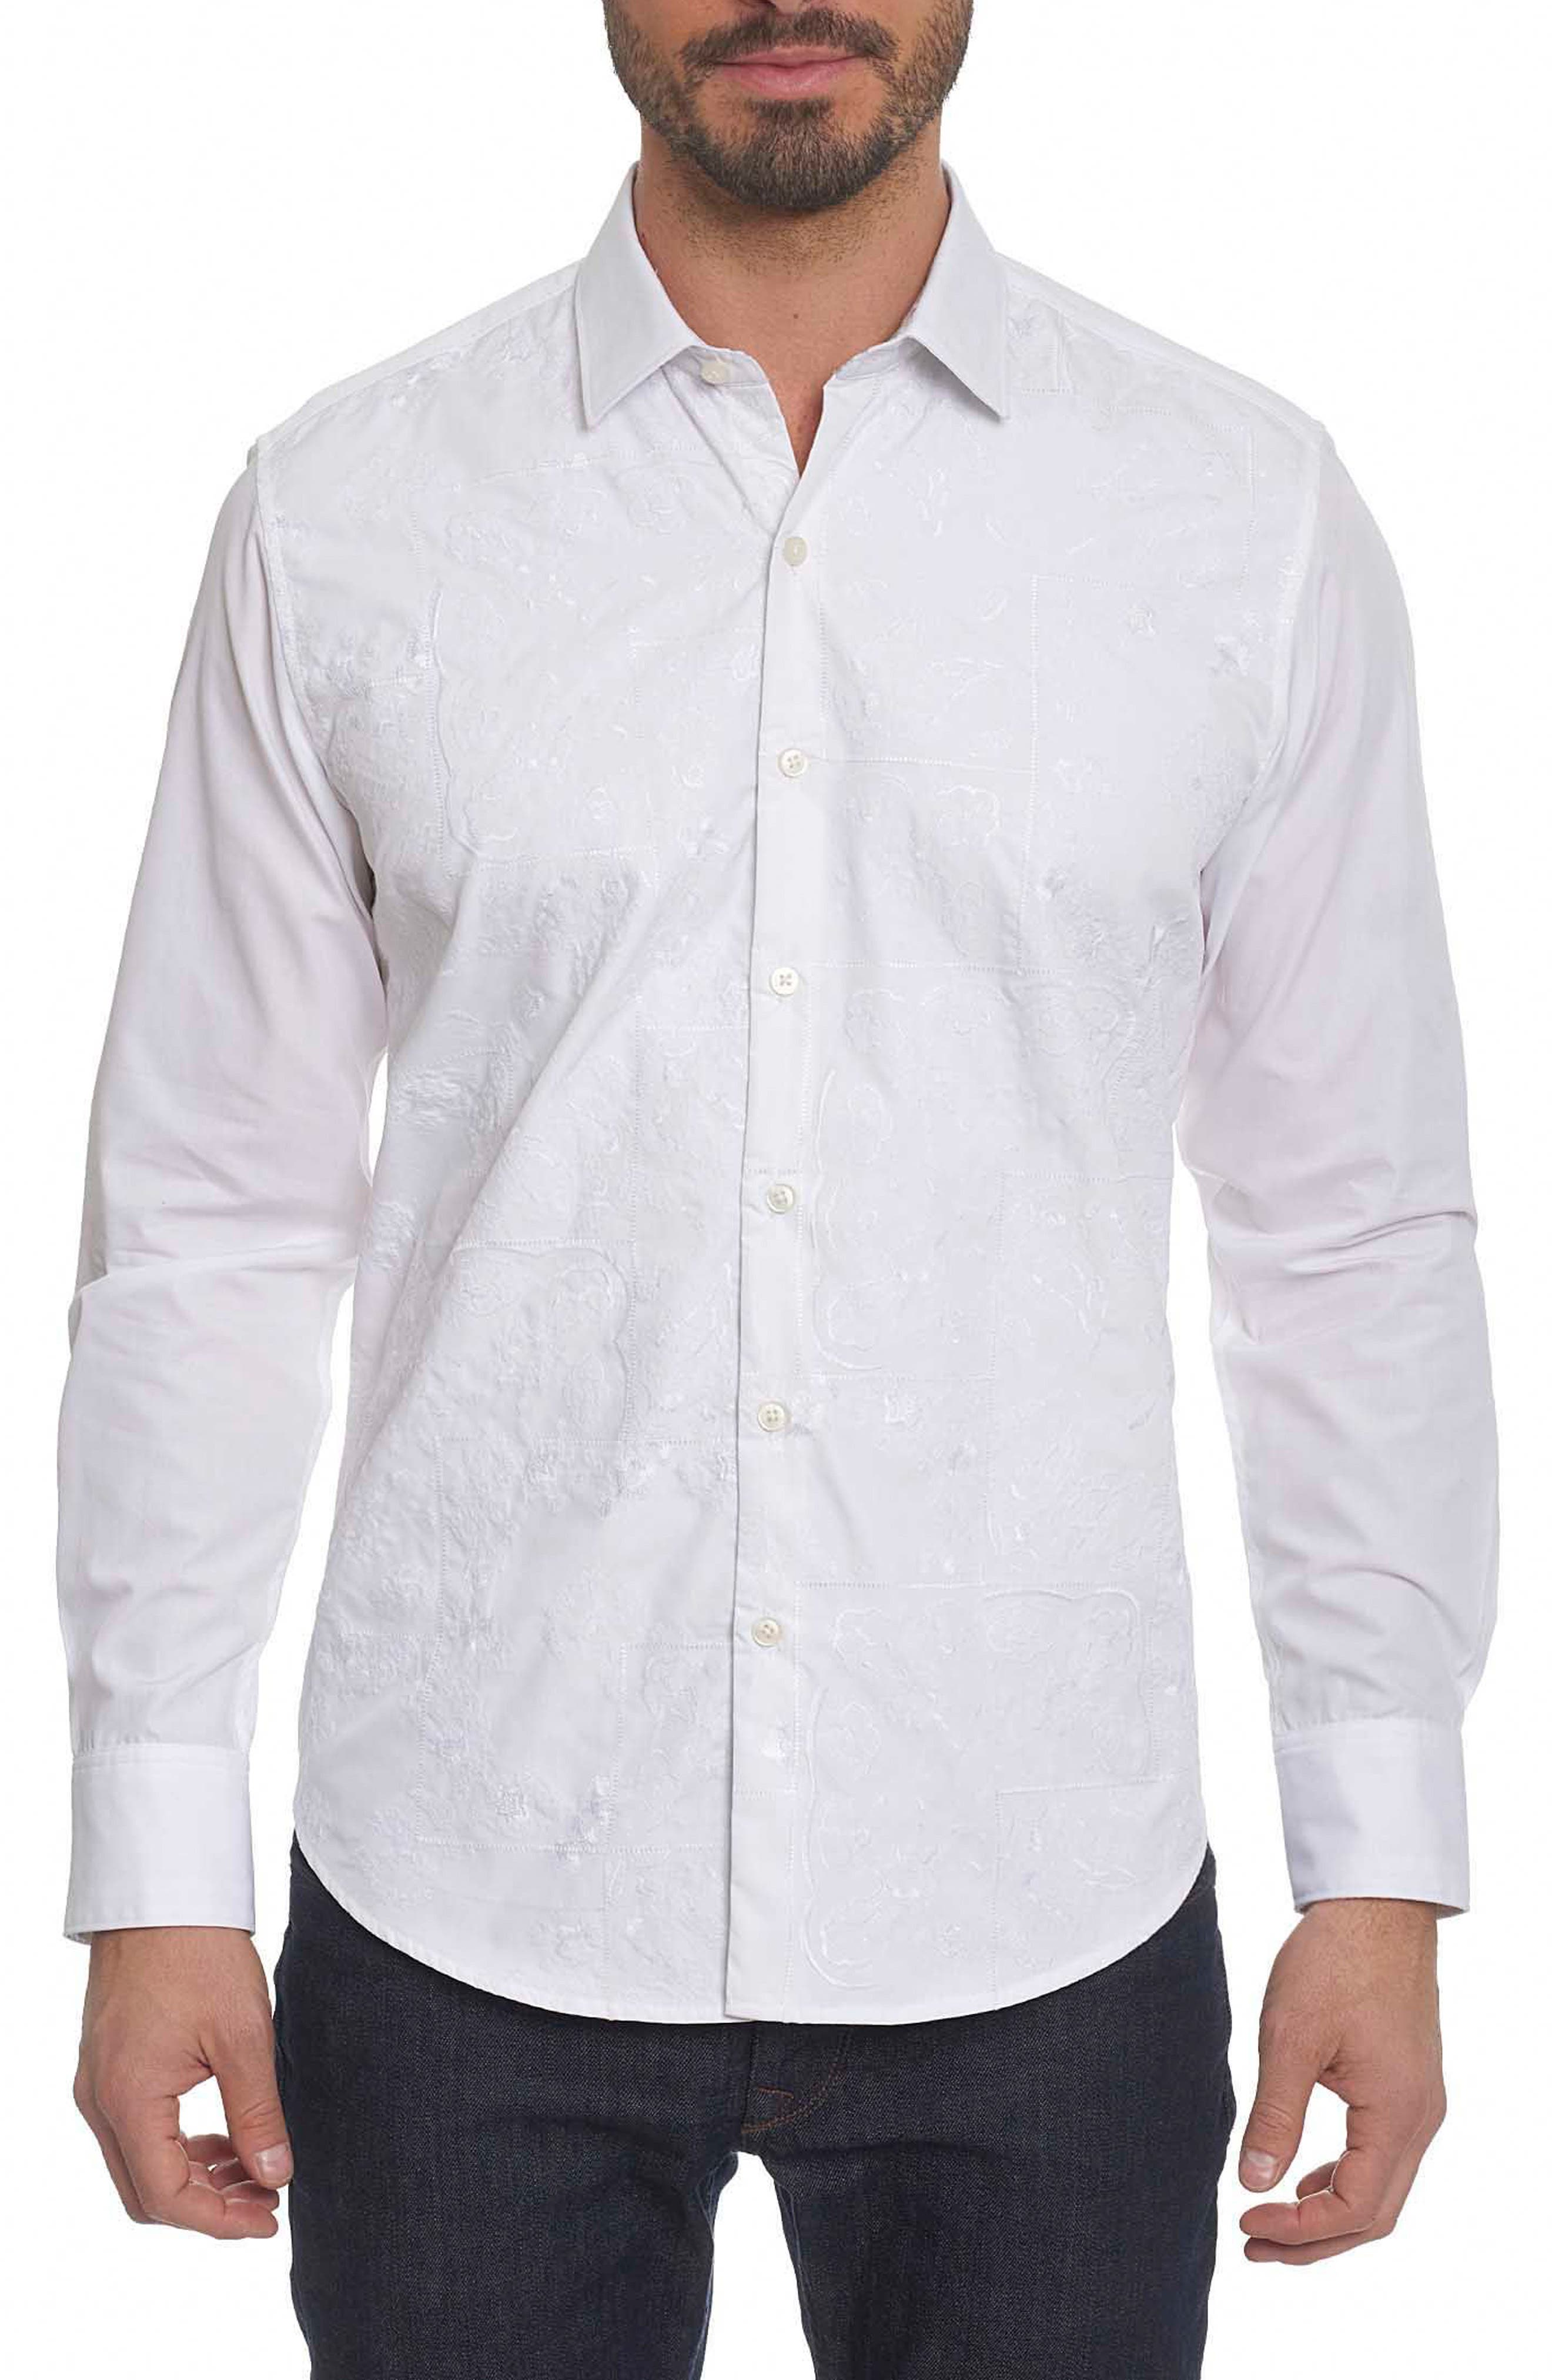 Onyx Classic Fit Embroidered Sport Shirt,                             Main thumbnail 1, color,                             White